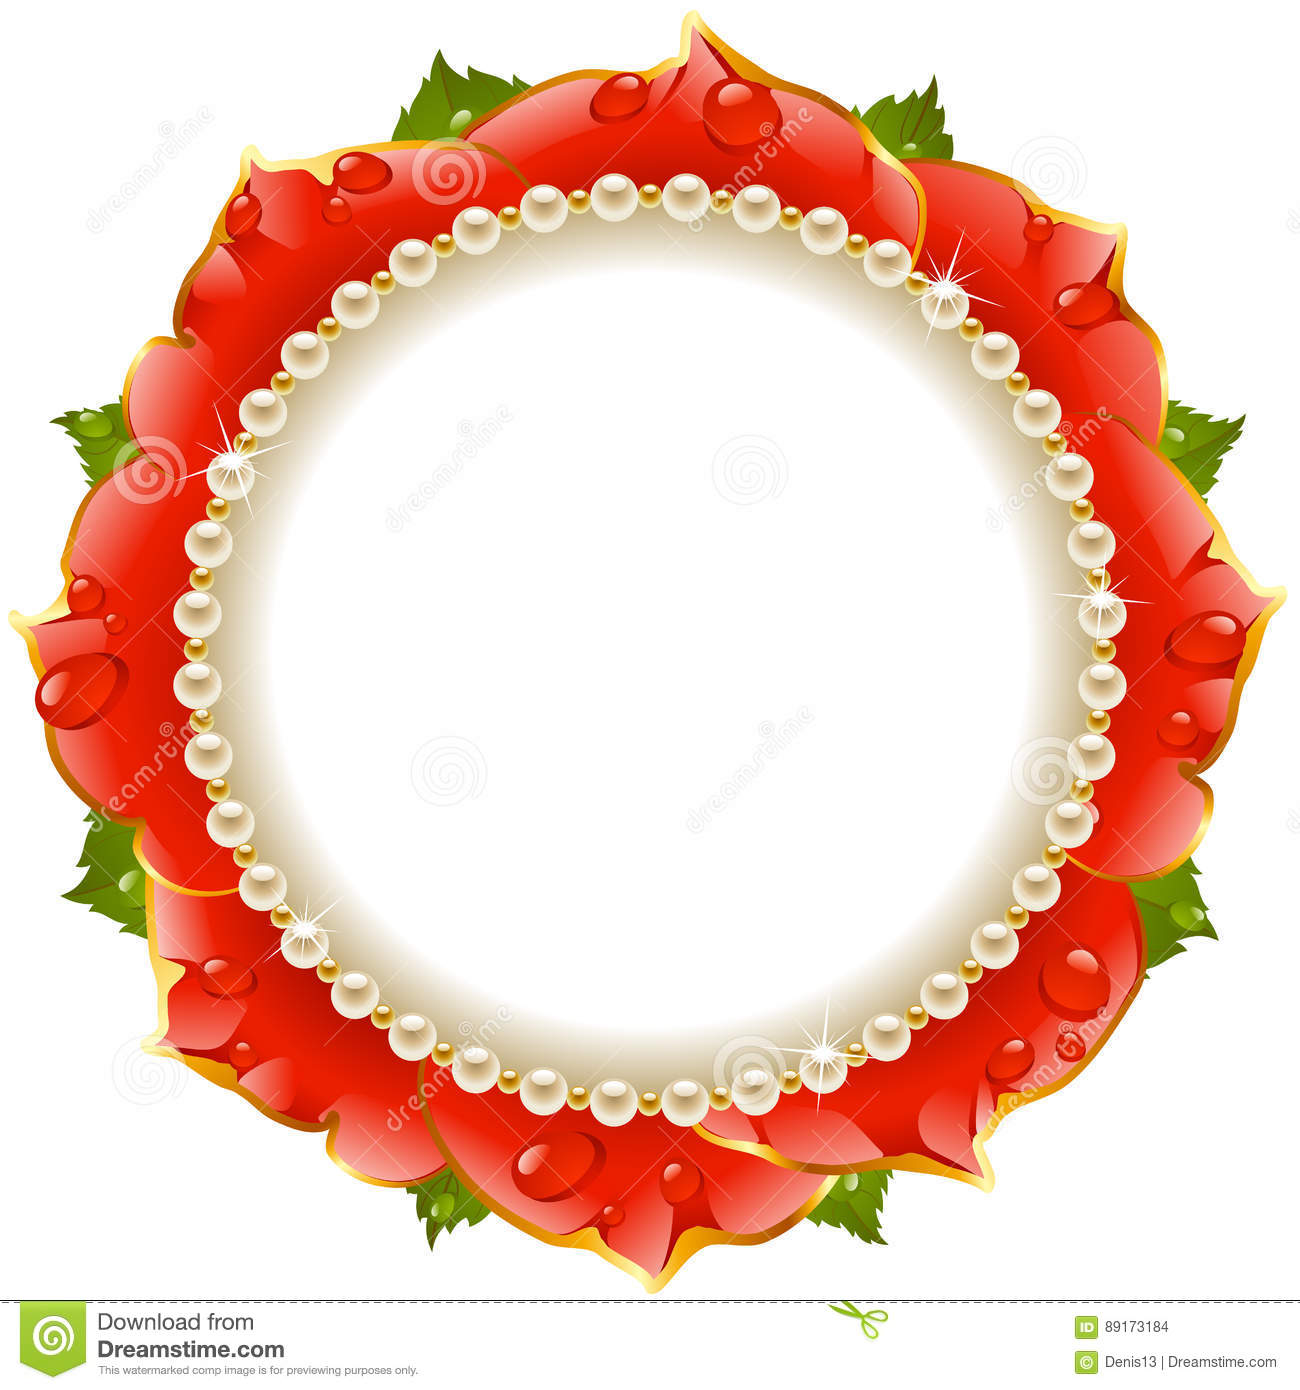 Red Floral Circle Frame stock vector. Illustration of gold - 89173184